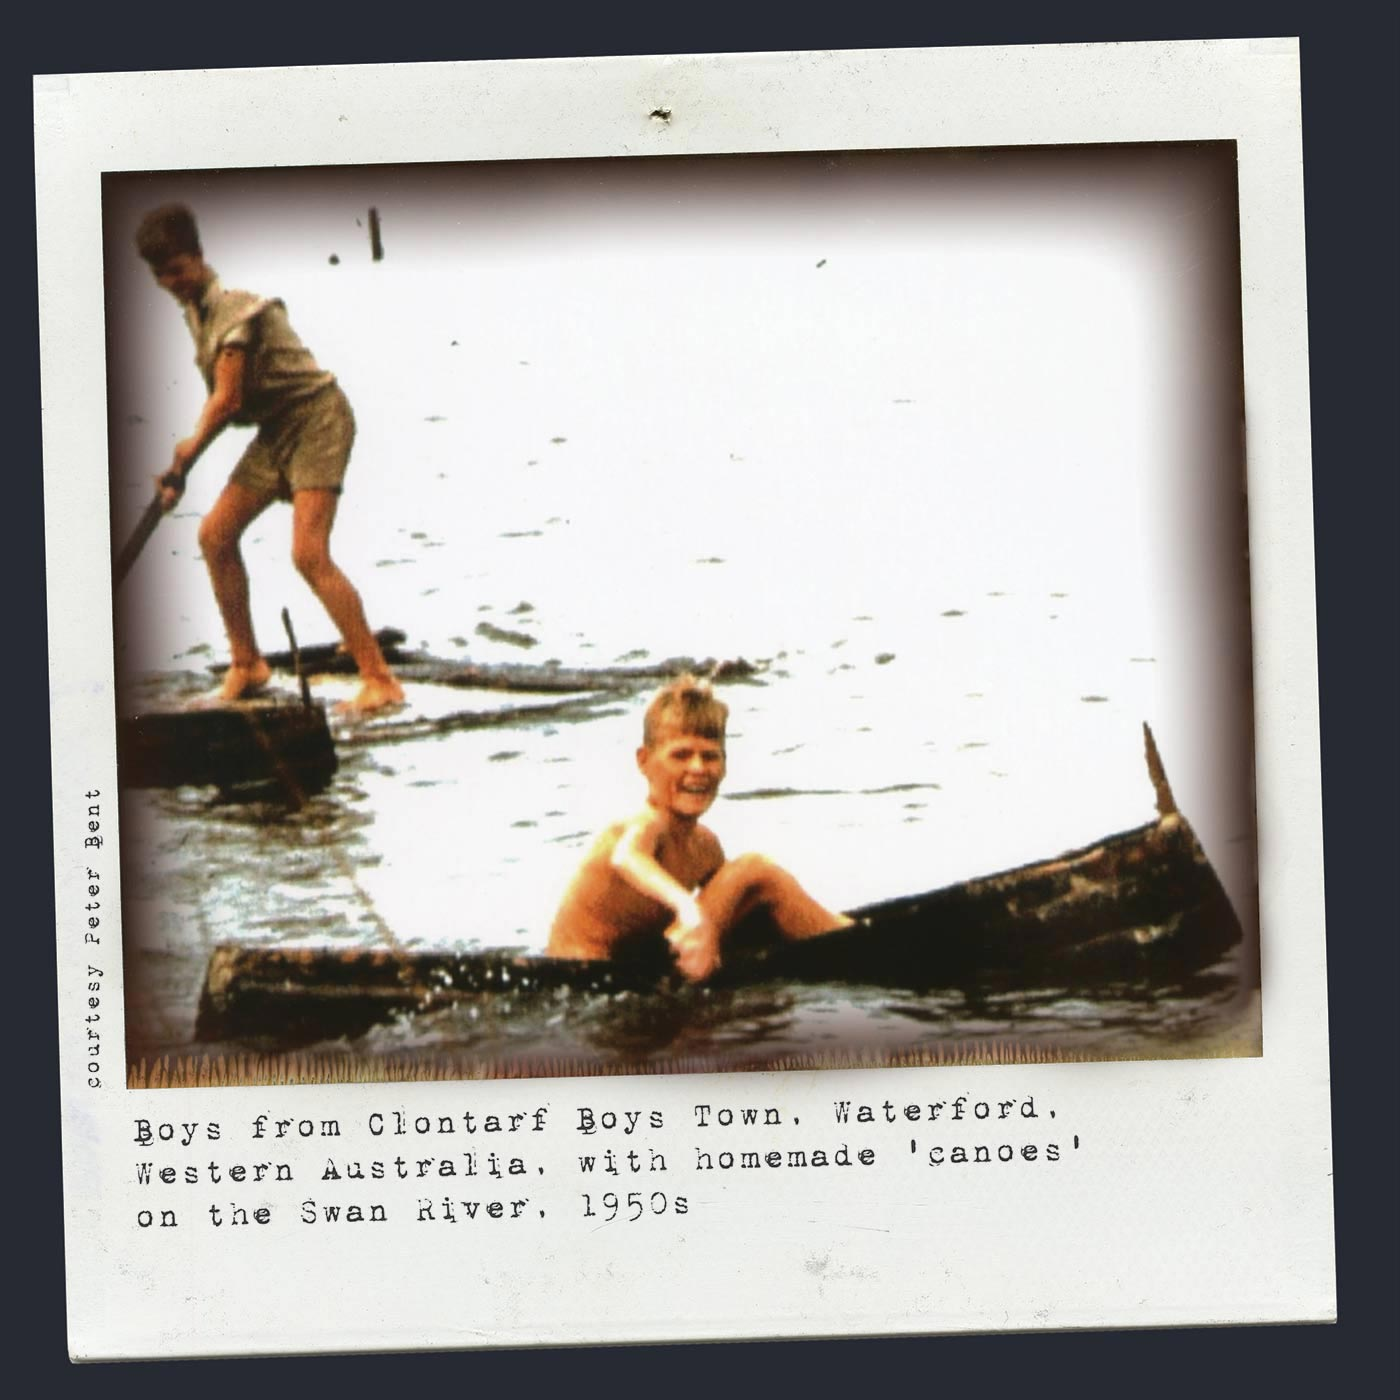 Polaroid photograph showing two boys on a waterway. The boy in the foregrounds sits in a canoe, paddling with his hands. Another boy stands on a raft at the rear. Typewritten text below reads 'Boys from Clontarf Boys Town, Waterford, Western Australia, with homemade 'canoes' on the Swan River, 1950s'. 'Courtesy Peter Bent' is typed along the left side. - click to view larger image